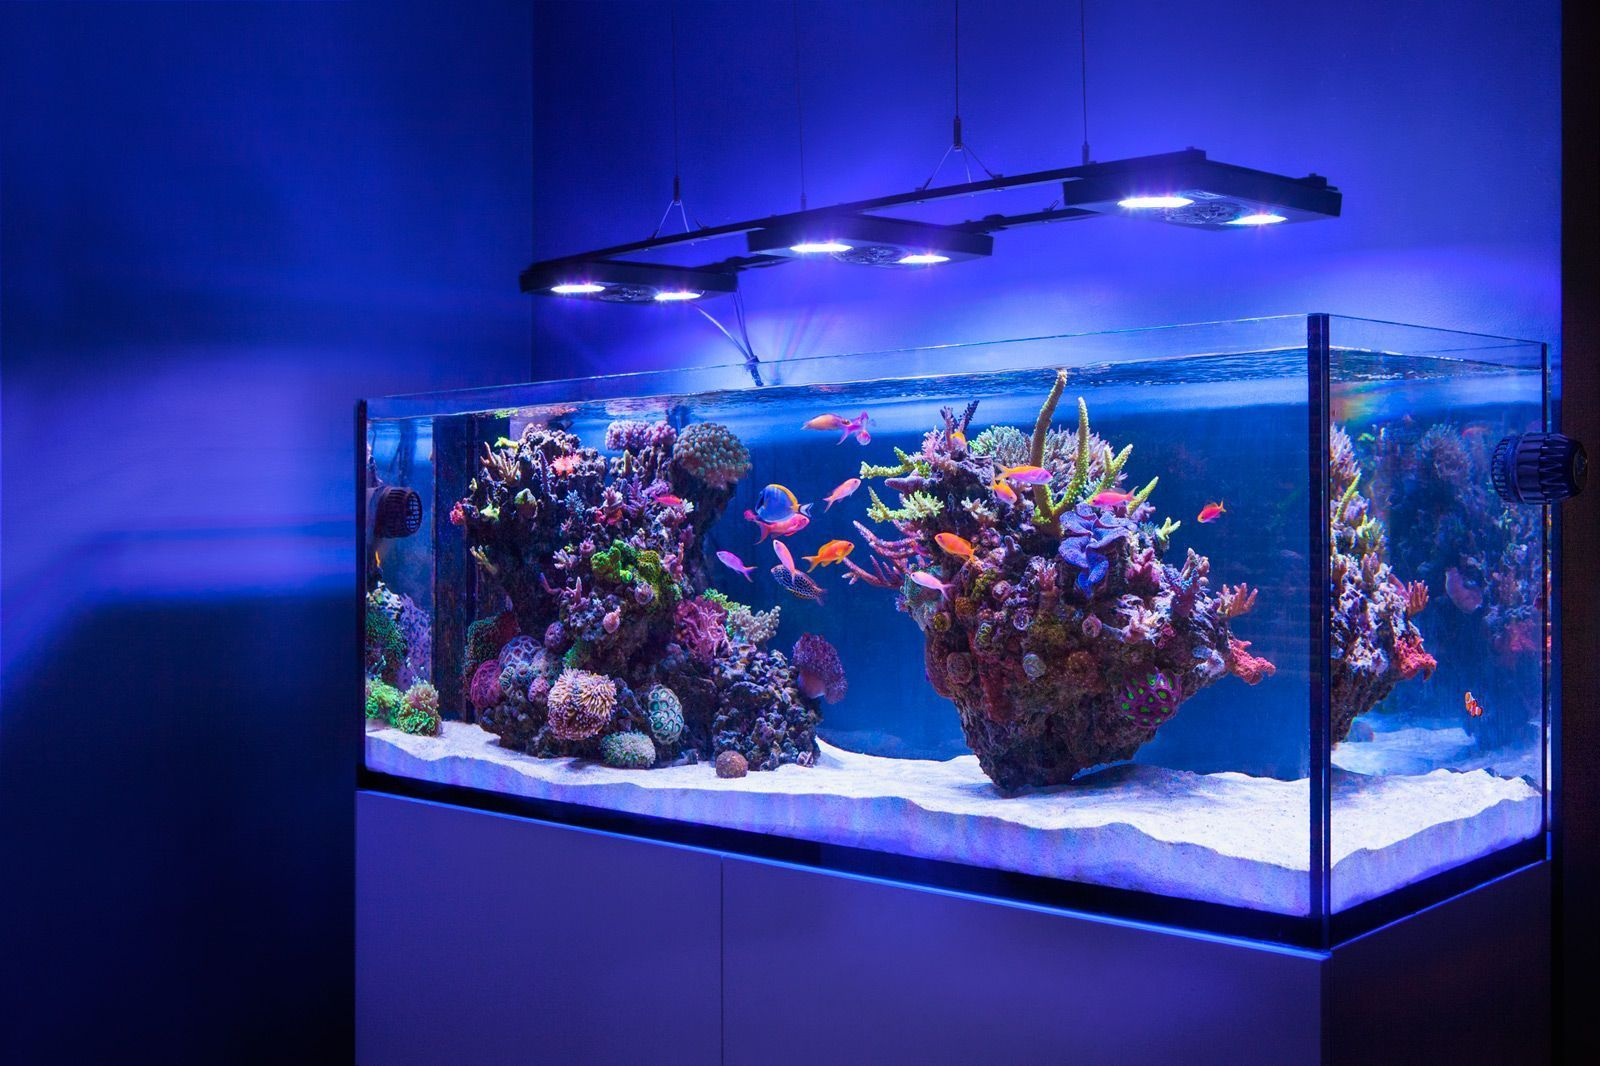 What S Your Favorite Reef Tank Photo You Know The One You Have As Your Screen Saver Or Background The One You A Aquarium Aquarium Fish Tank Salt Water Fish